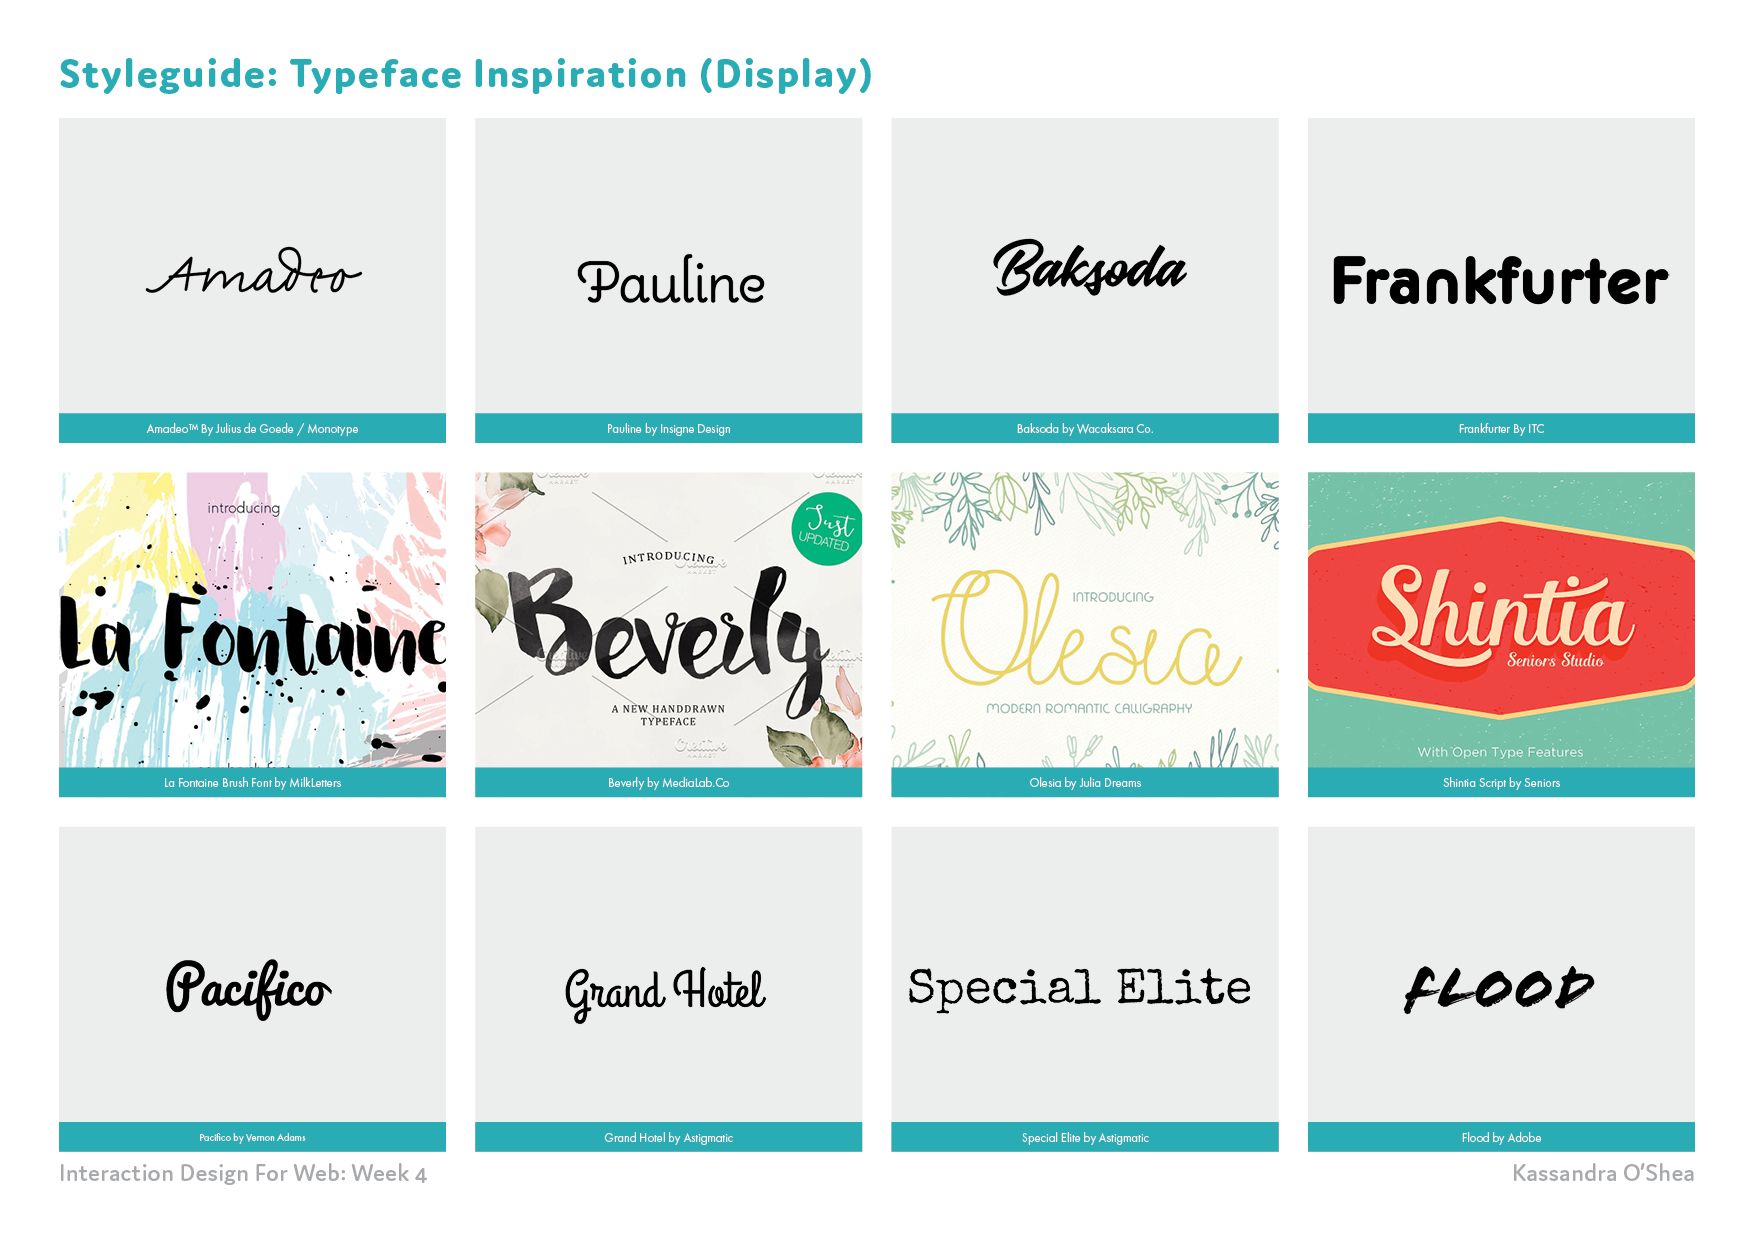 Styleguide: Typeface Inspiration (Display)